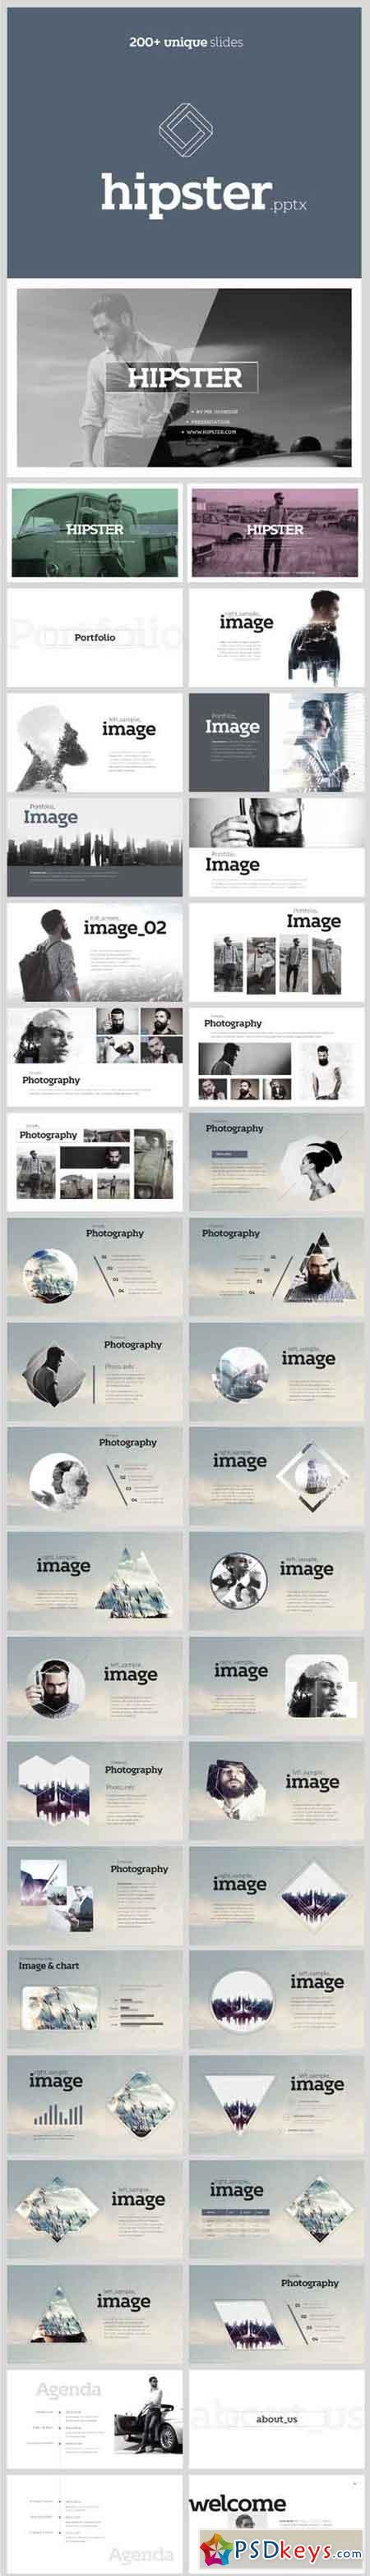 powerpoint themes hipster powerpoint template hipster image collections powerpoint